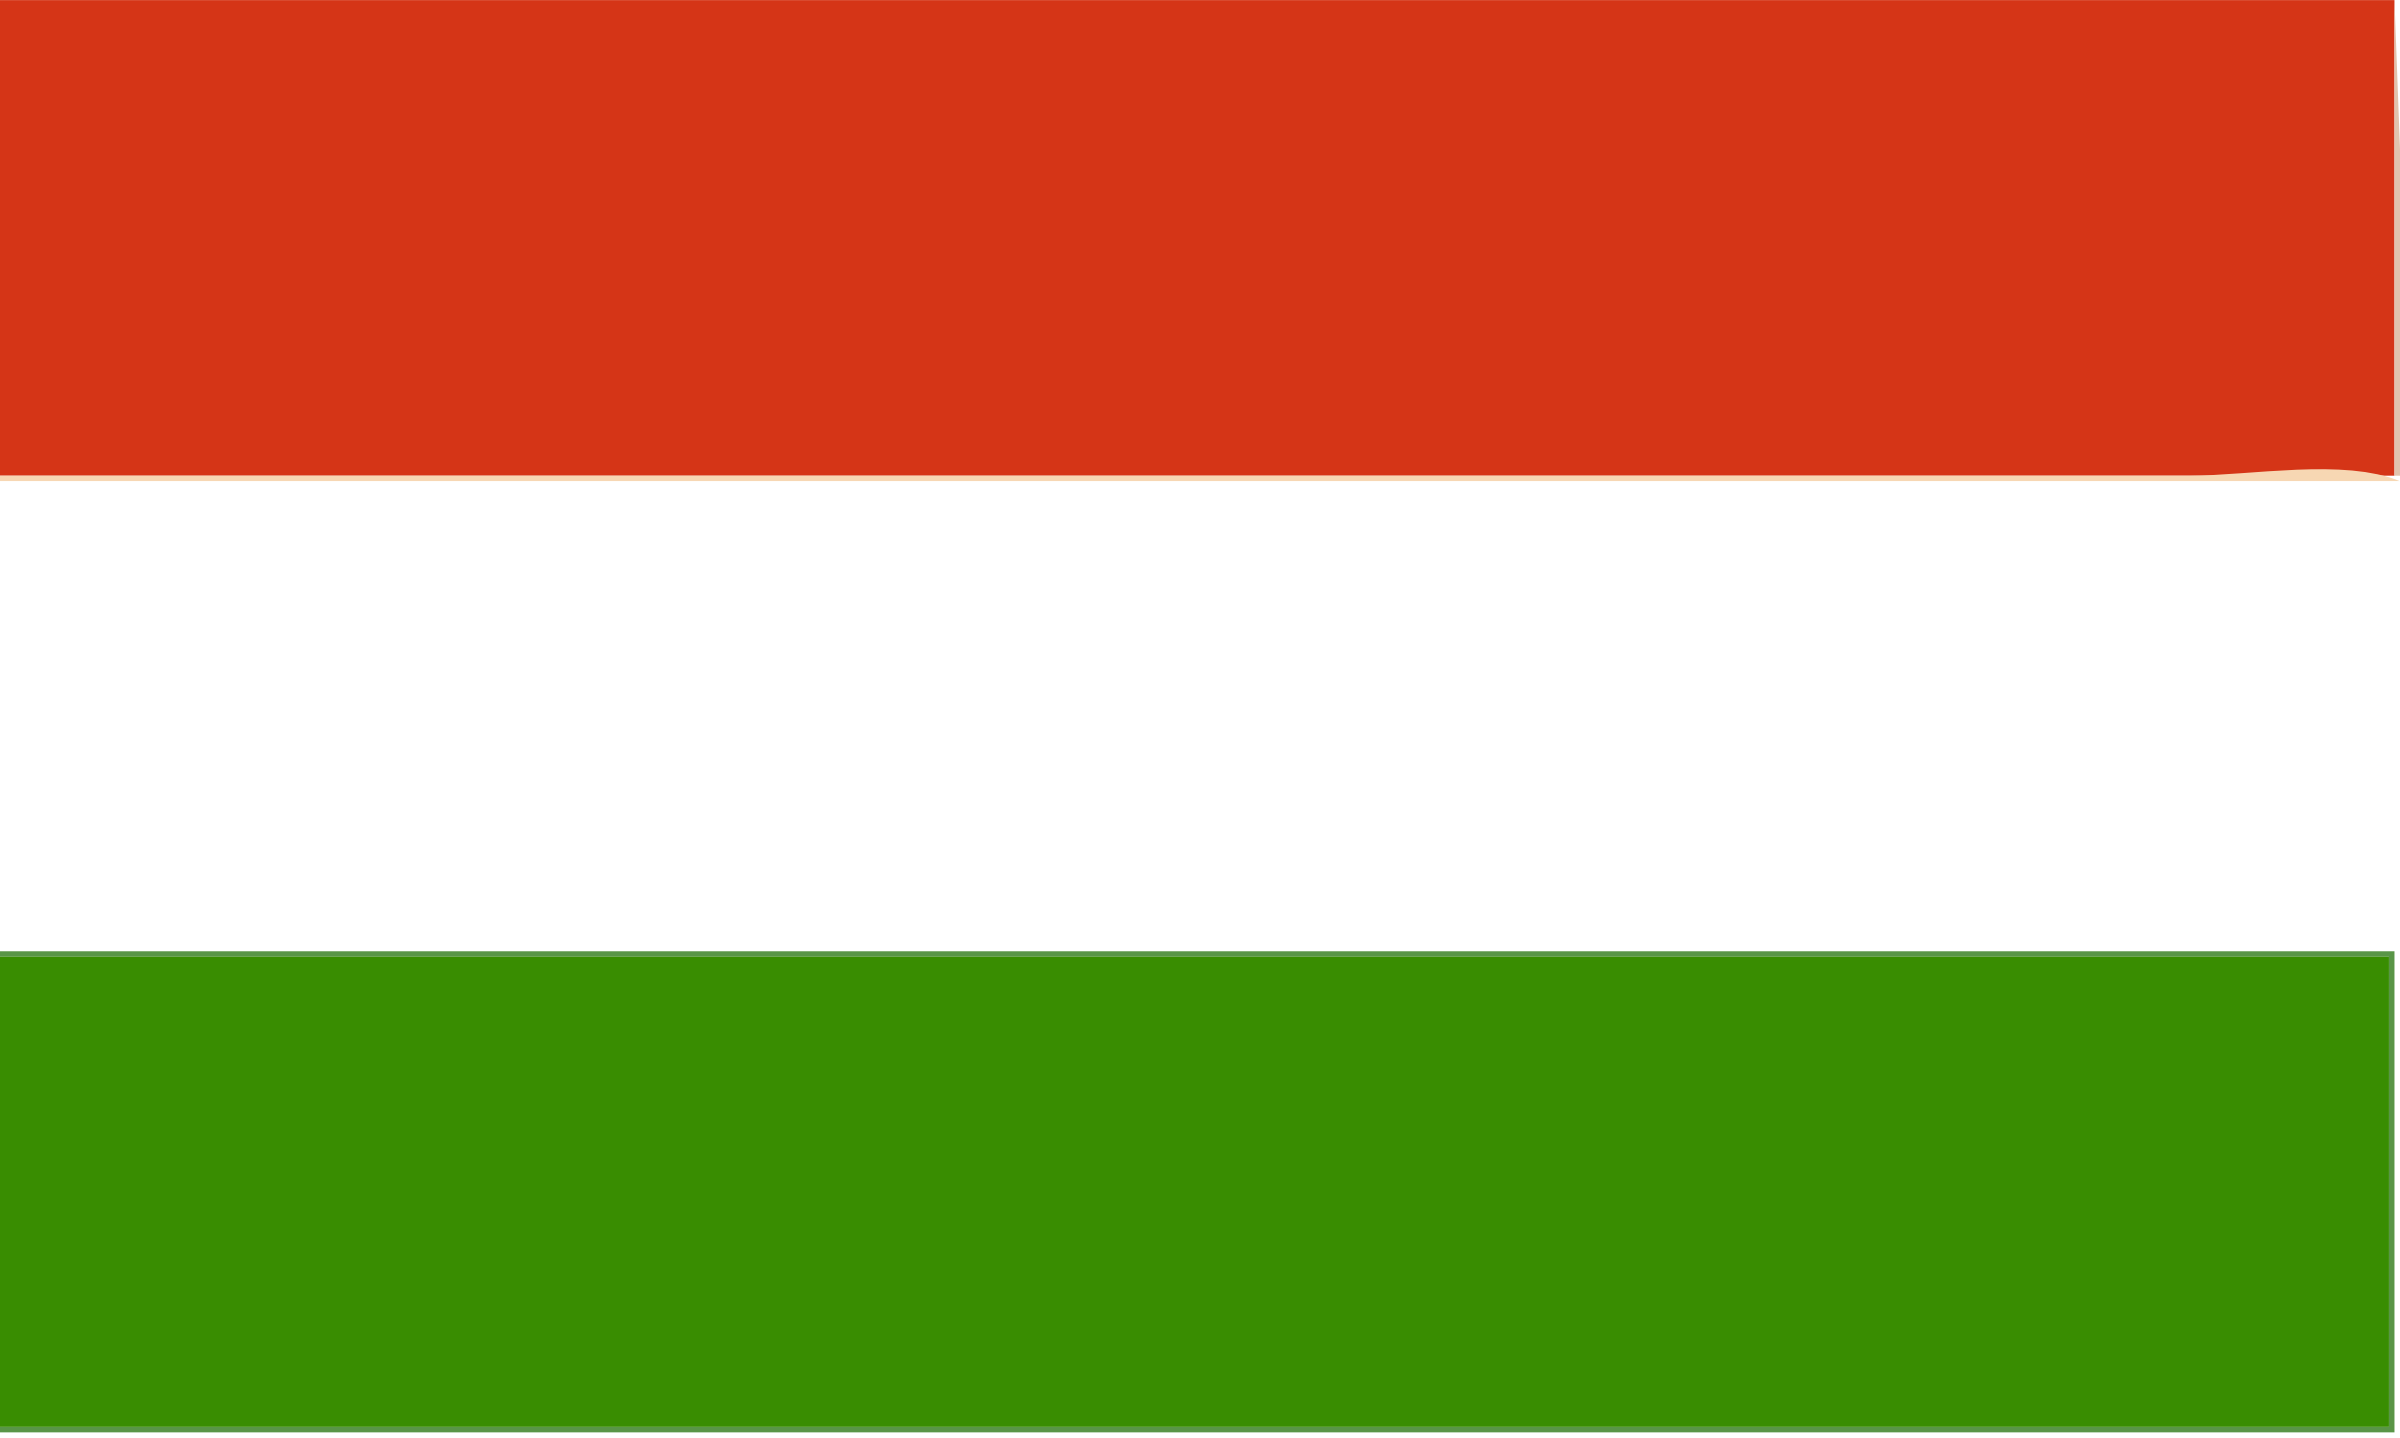 Flag of Hungary by Joesph